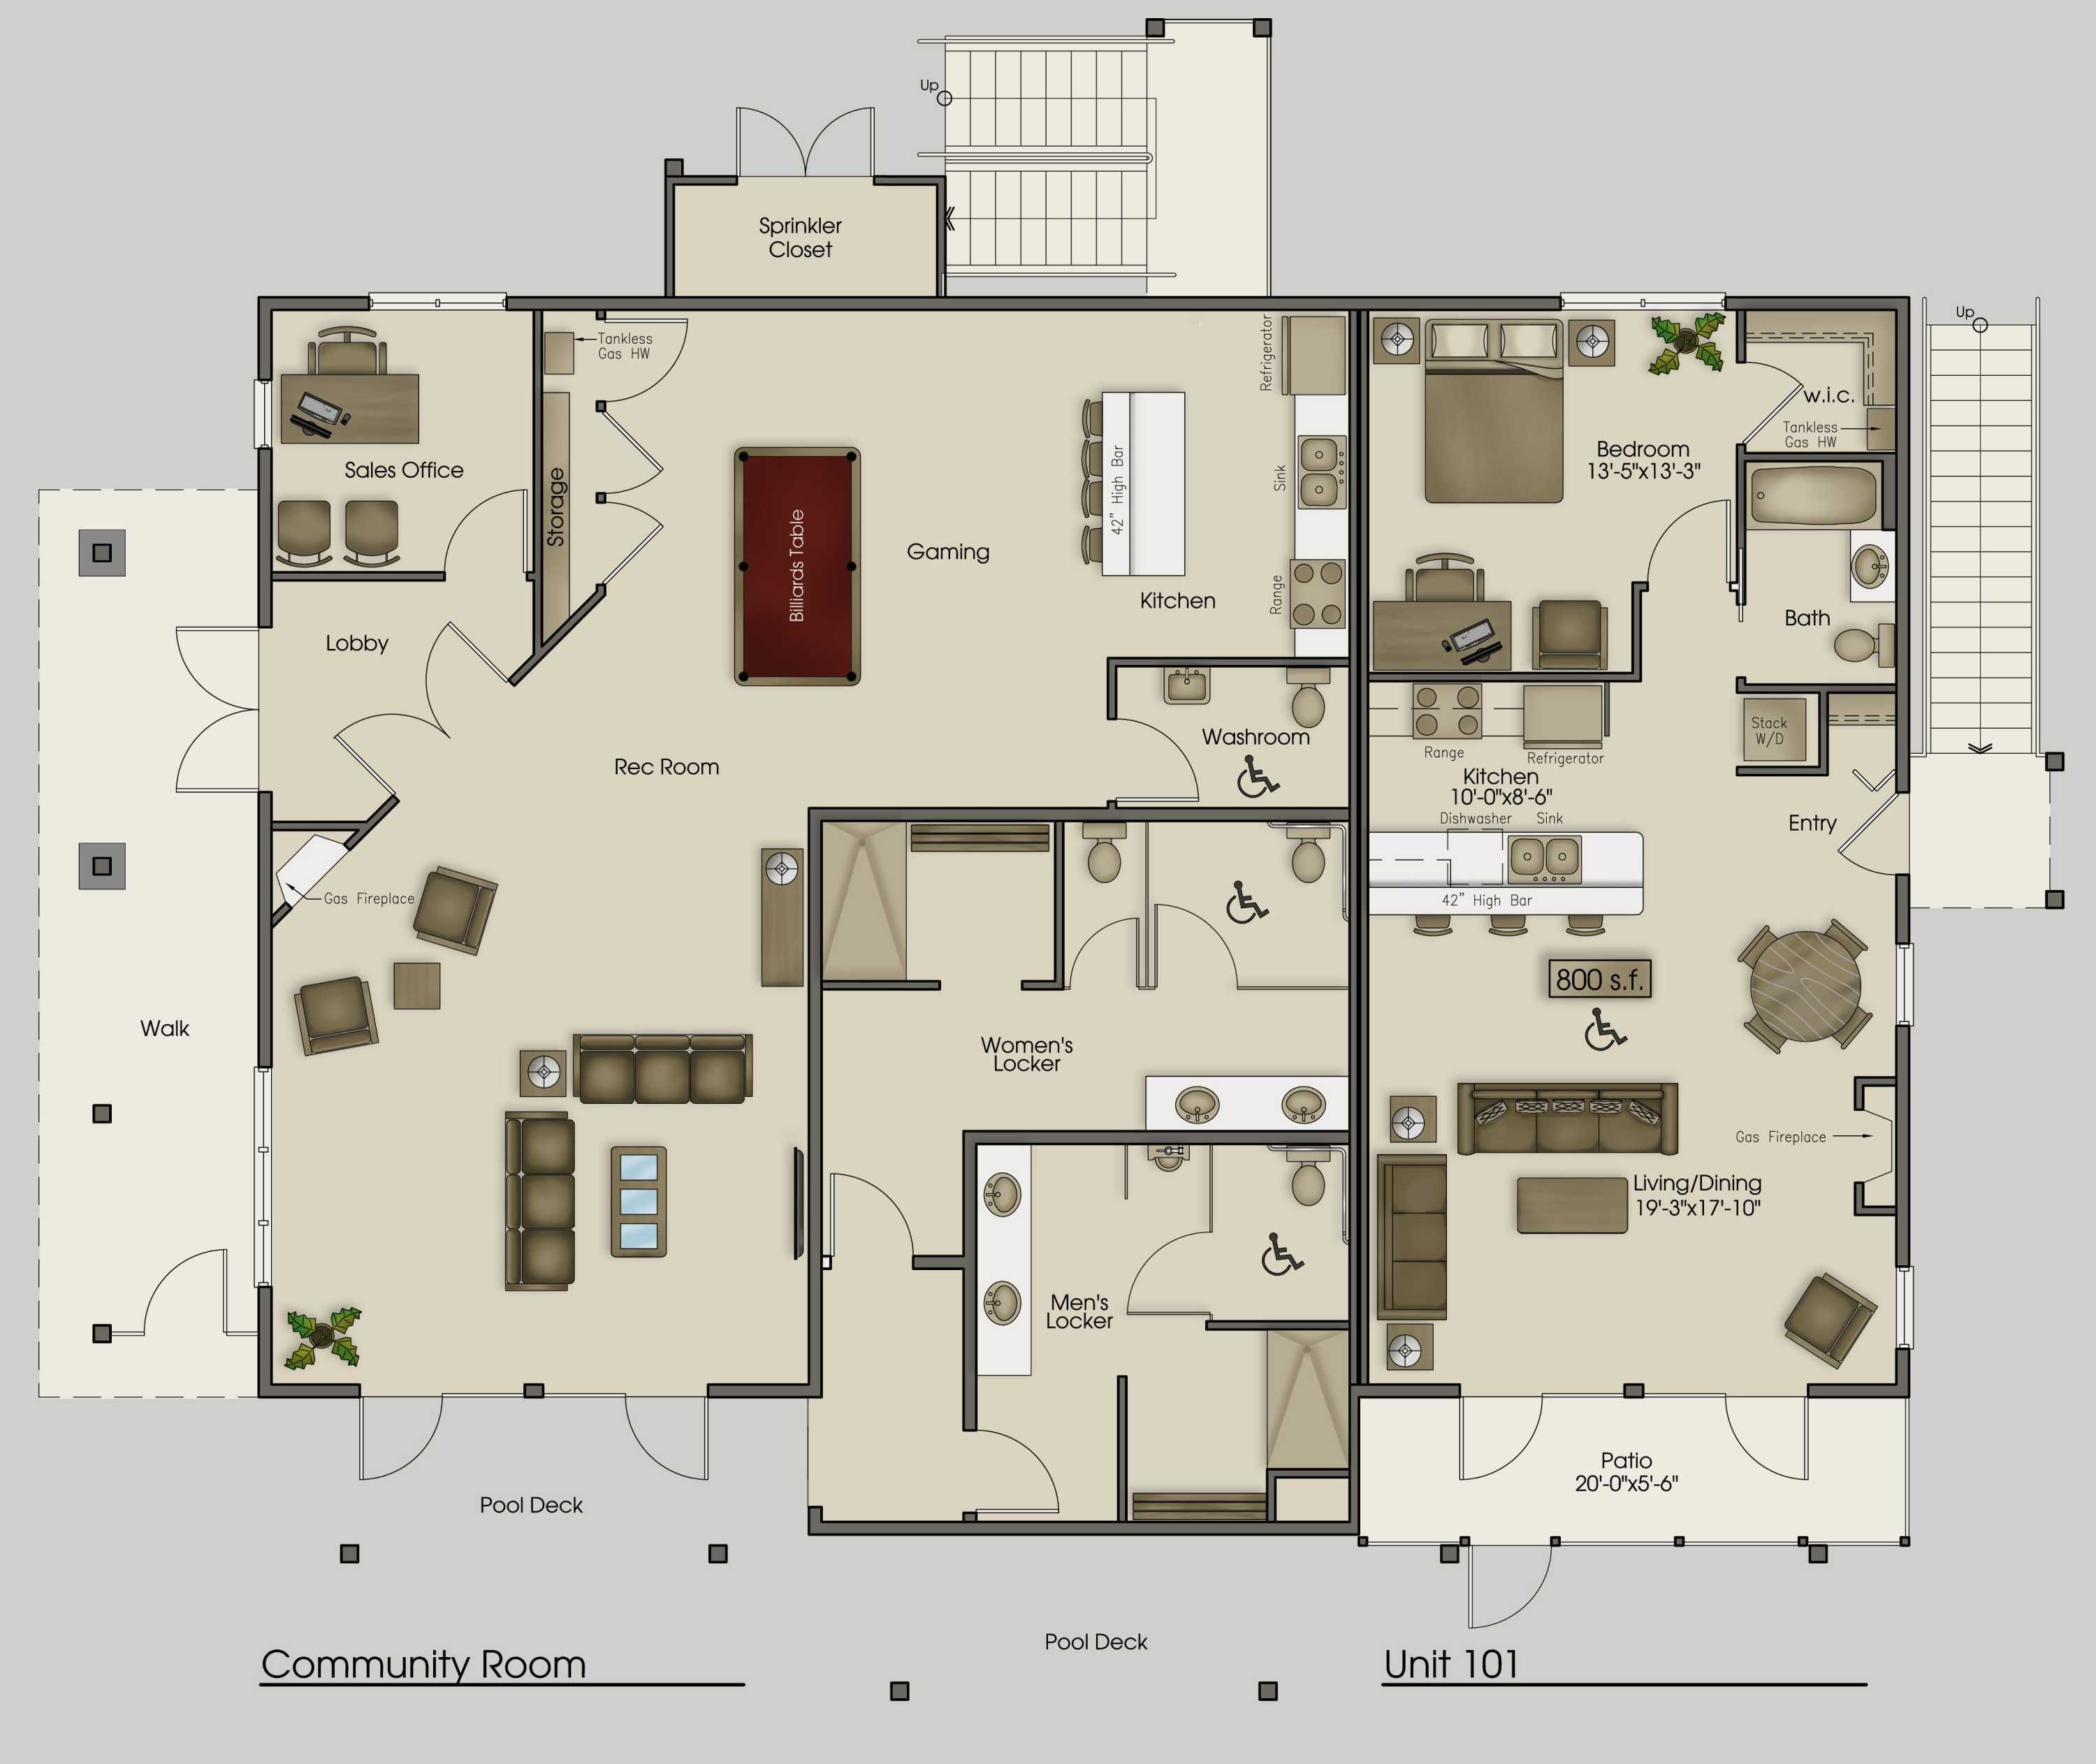 Mega villa plans clubhouse plan pictures apartments sample giesendesign floor plan software House designs and floor plans software